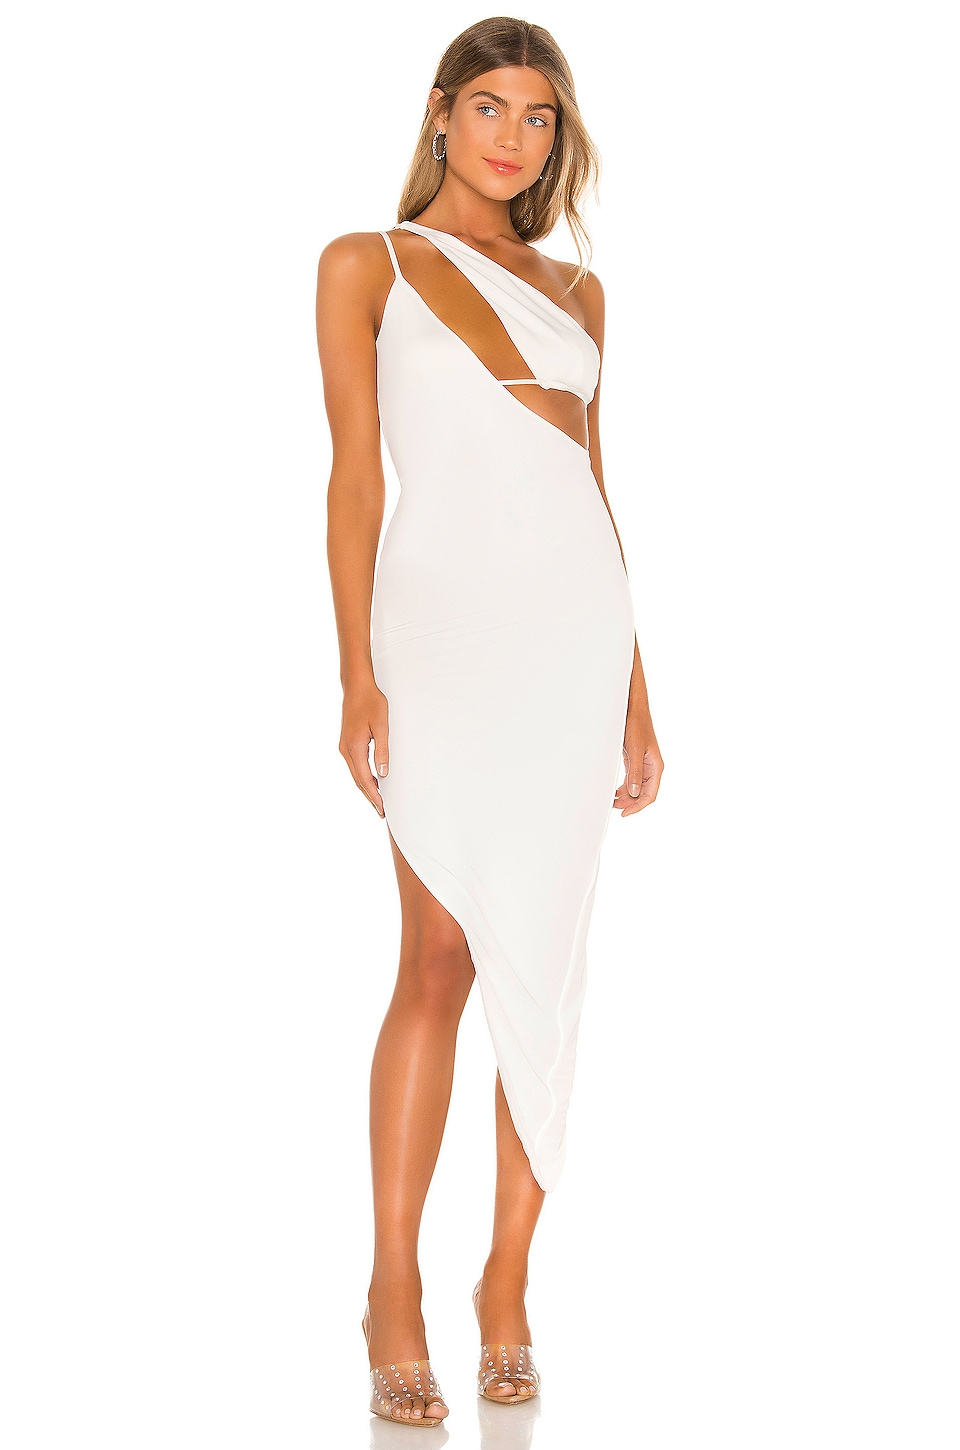 h:ours Revel Dress in White